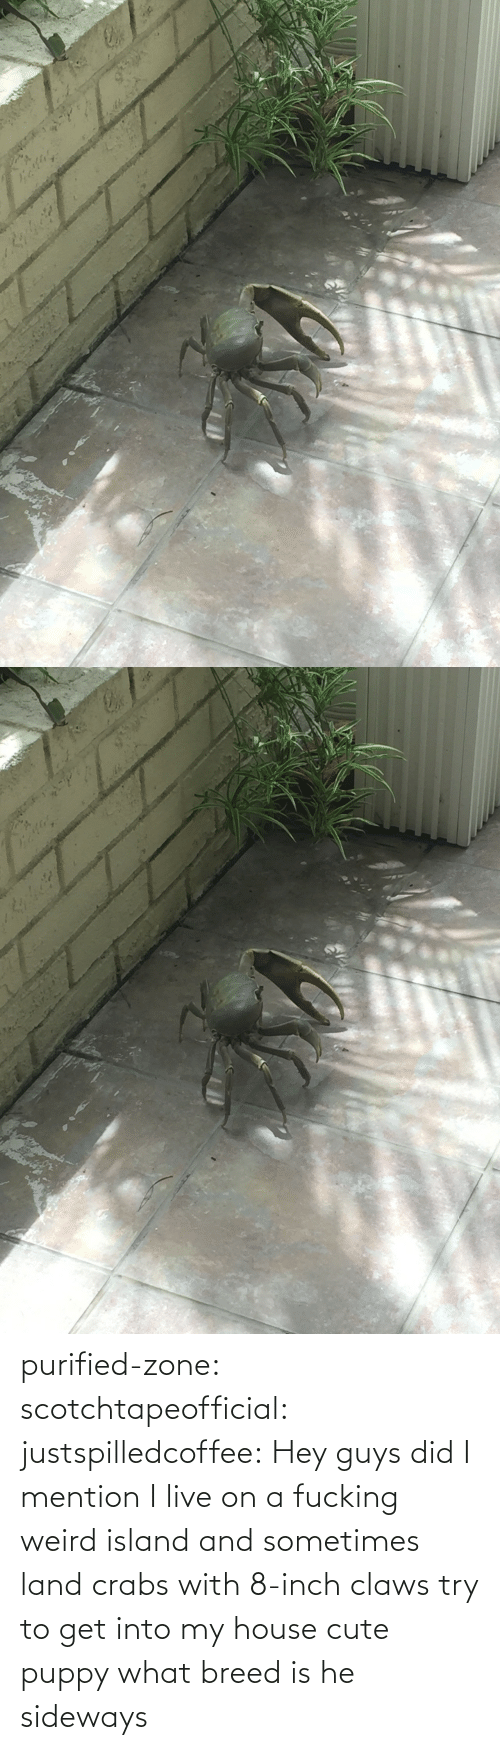 hey guys: purified-zone: scotchtapeofficial:  justspilledcoffee:  Hey guys did I mention I live on a fucking weird island and sometimes land crabs with 8-inch claws try to get into my house  cute puppy what breed is he  sideways